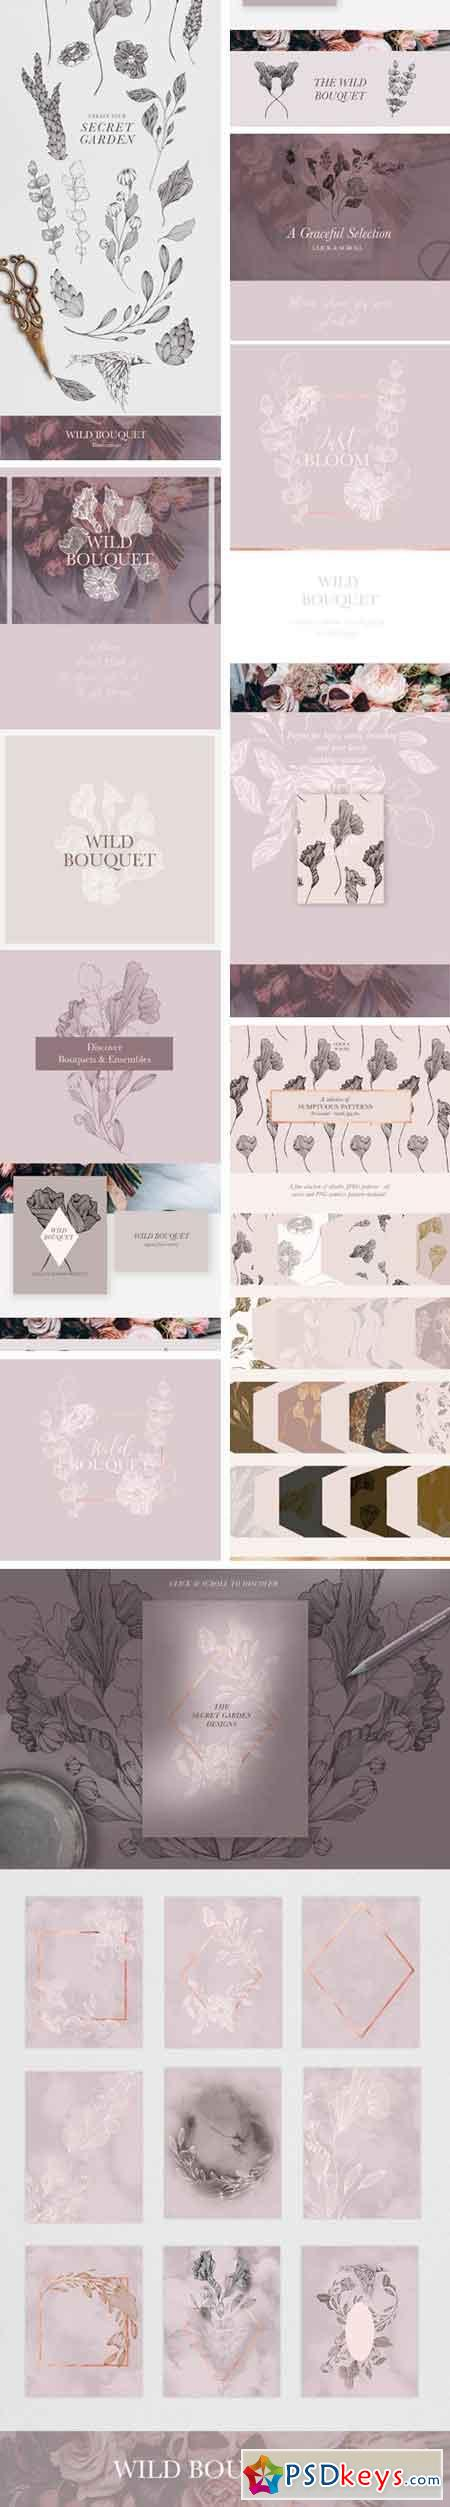 Wild Bouquet Wedding Illustrations 2270011